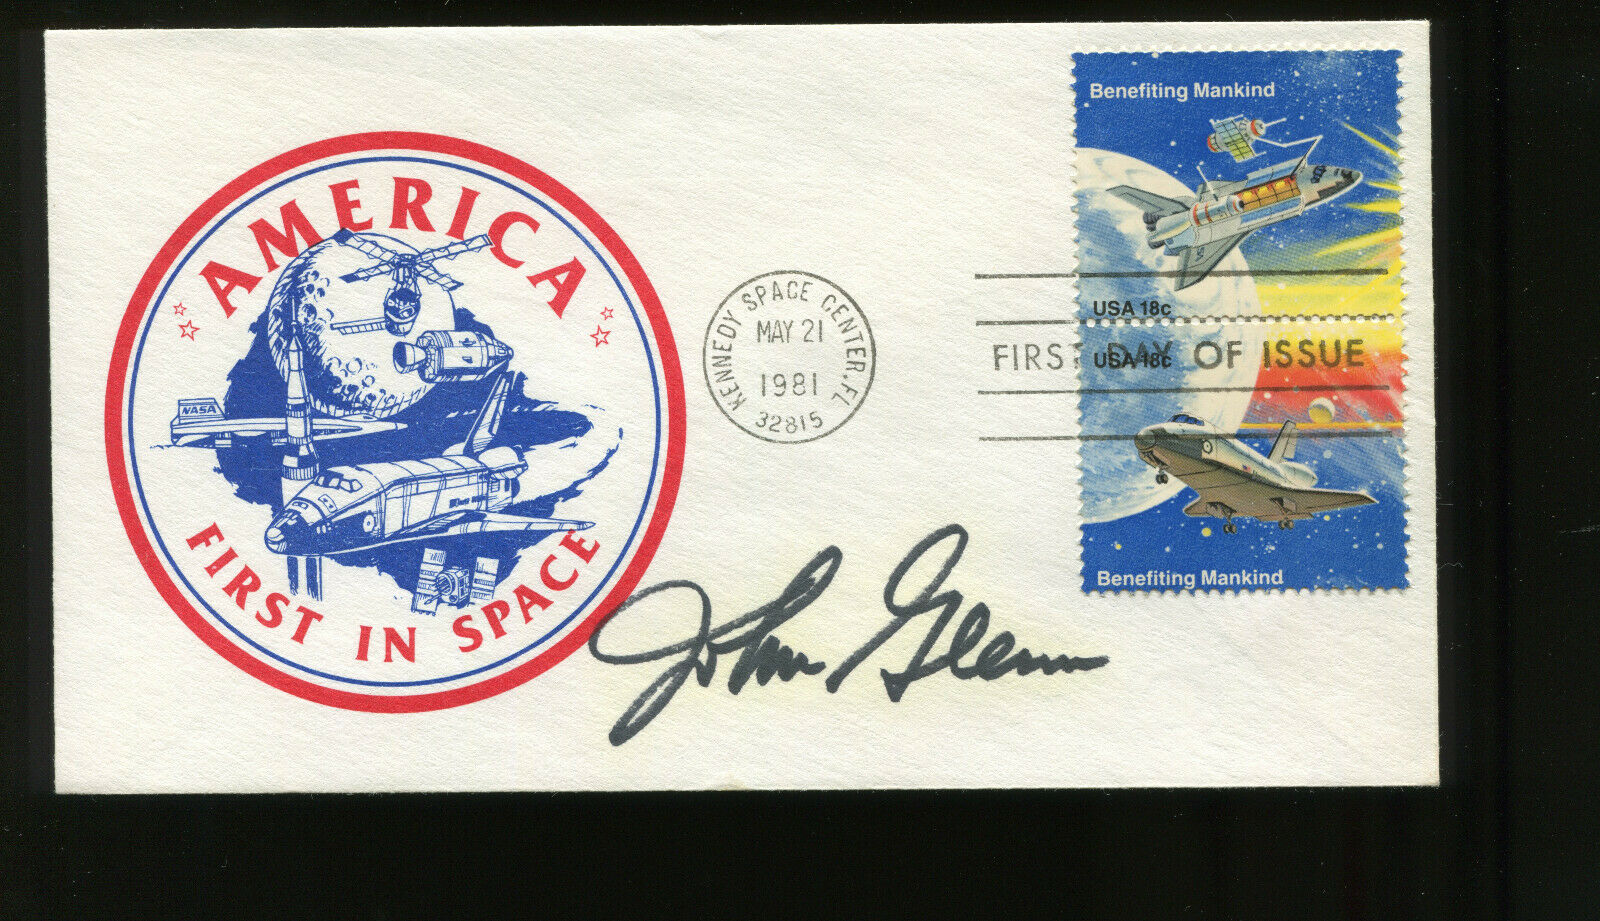 s l1600 - Astronaut JOHN GLENN Signed on may 21 1981 Space Achievement Issue FDC